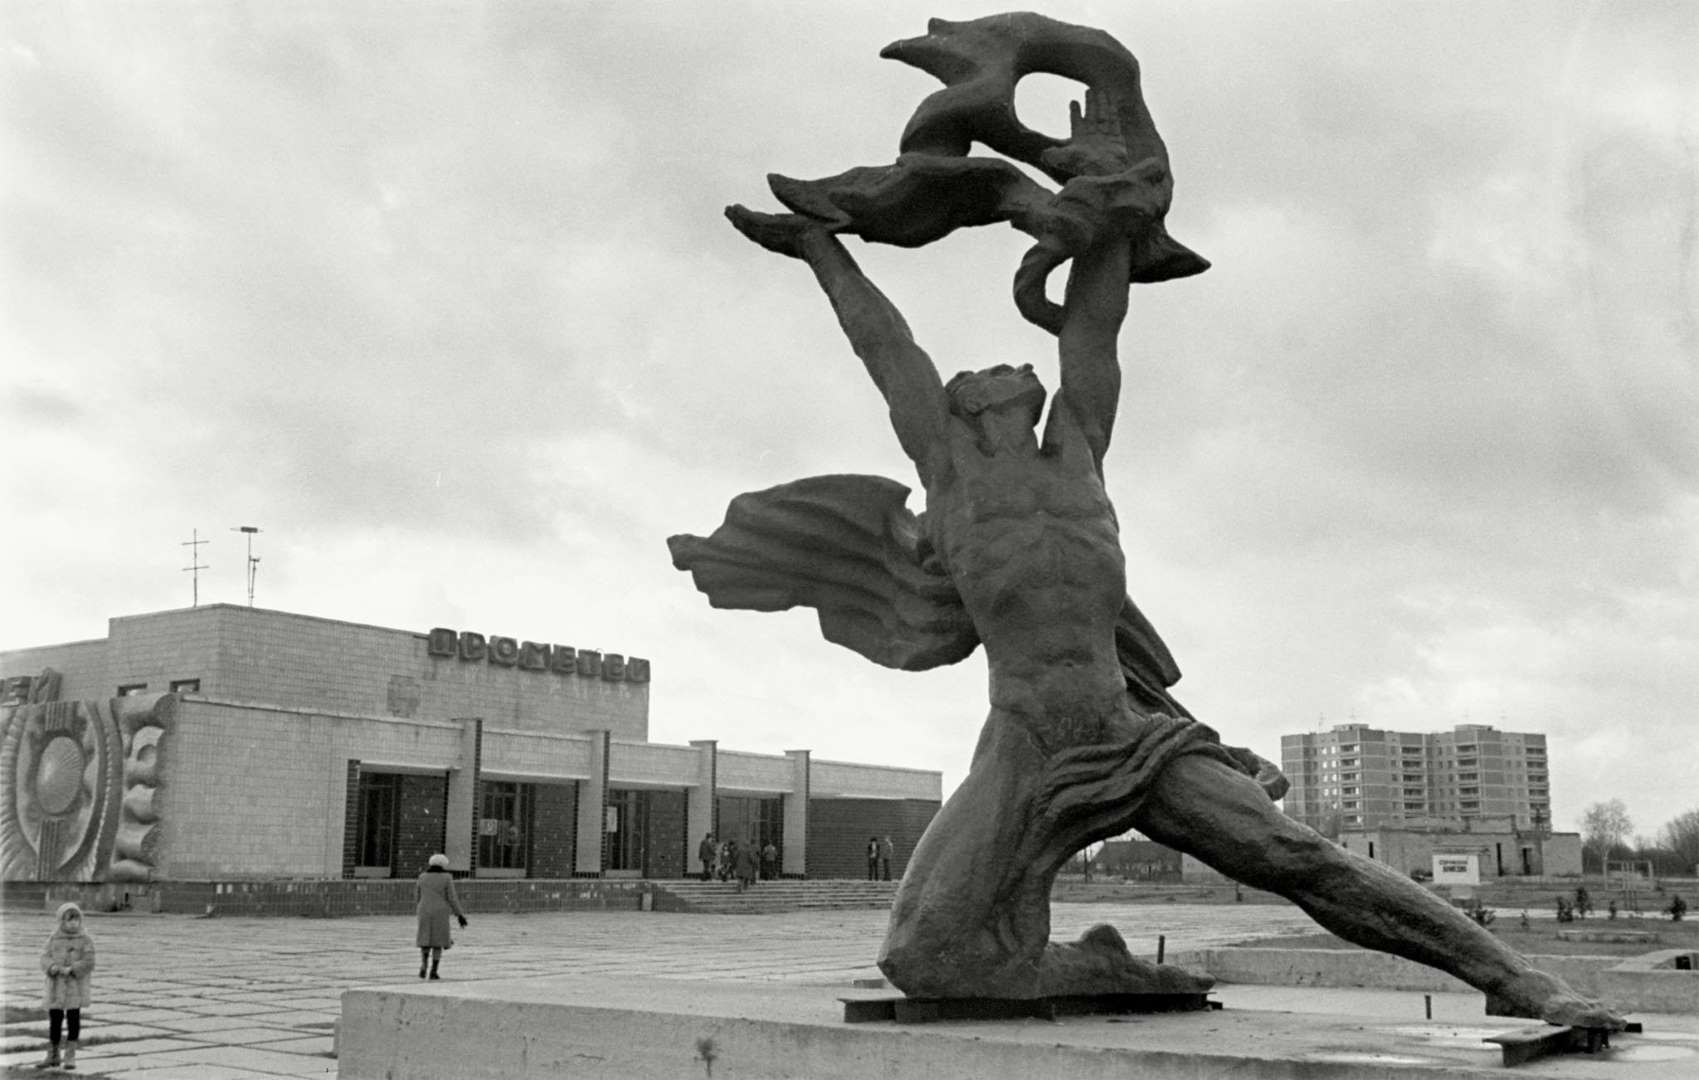 Pripyat, Ukrainian ssr, USSR, kurchatov street, the monument 'taming of the fire', by architect l, olovyannikov, devoted to the builders of the chernobyl nuclear power plant, December 1, 1979.